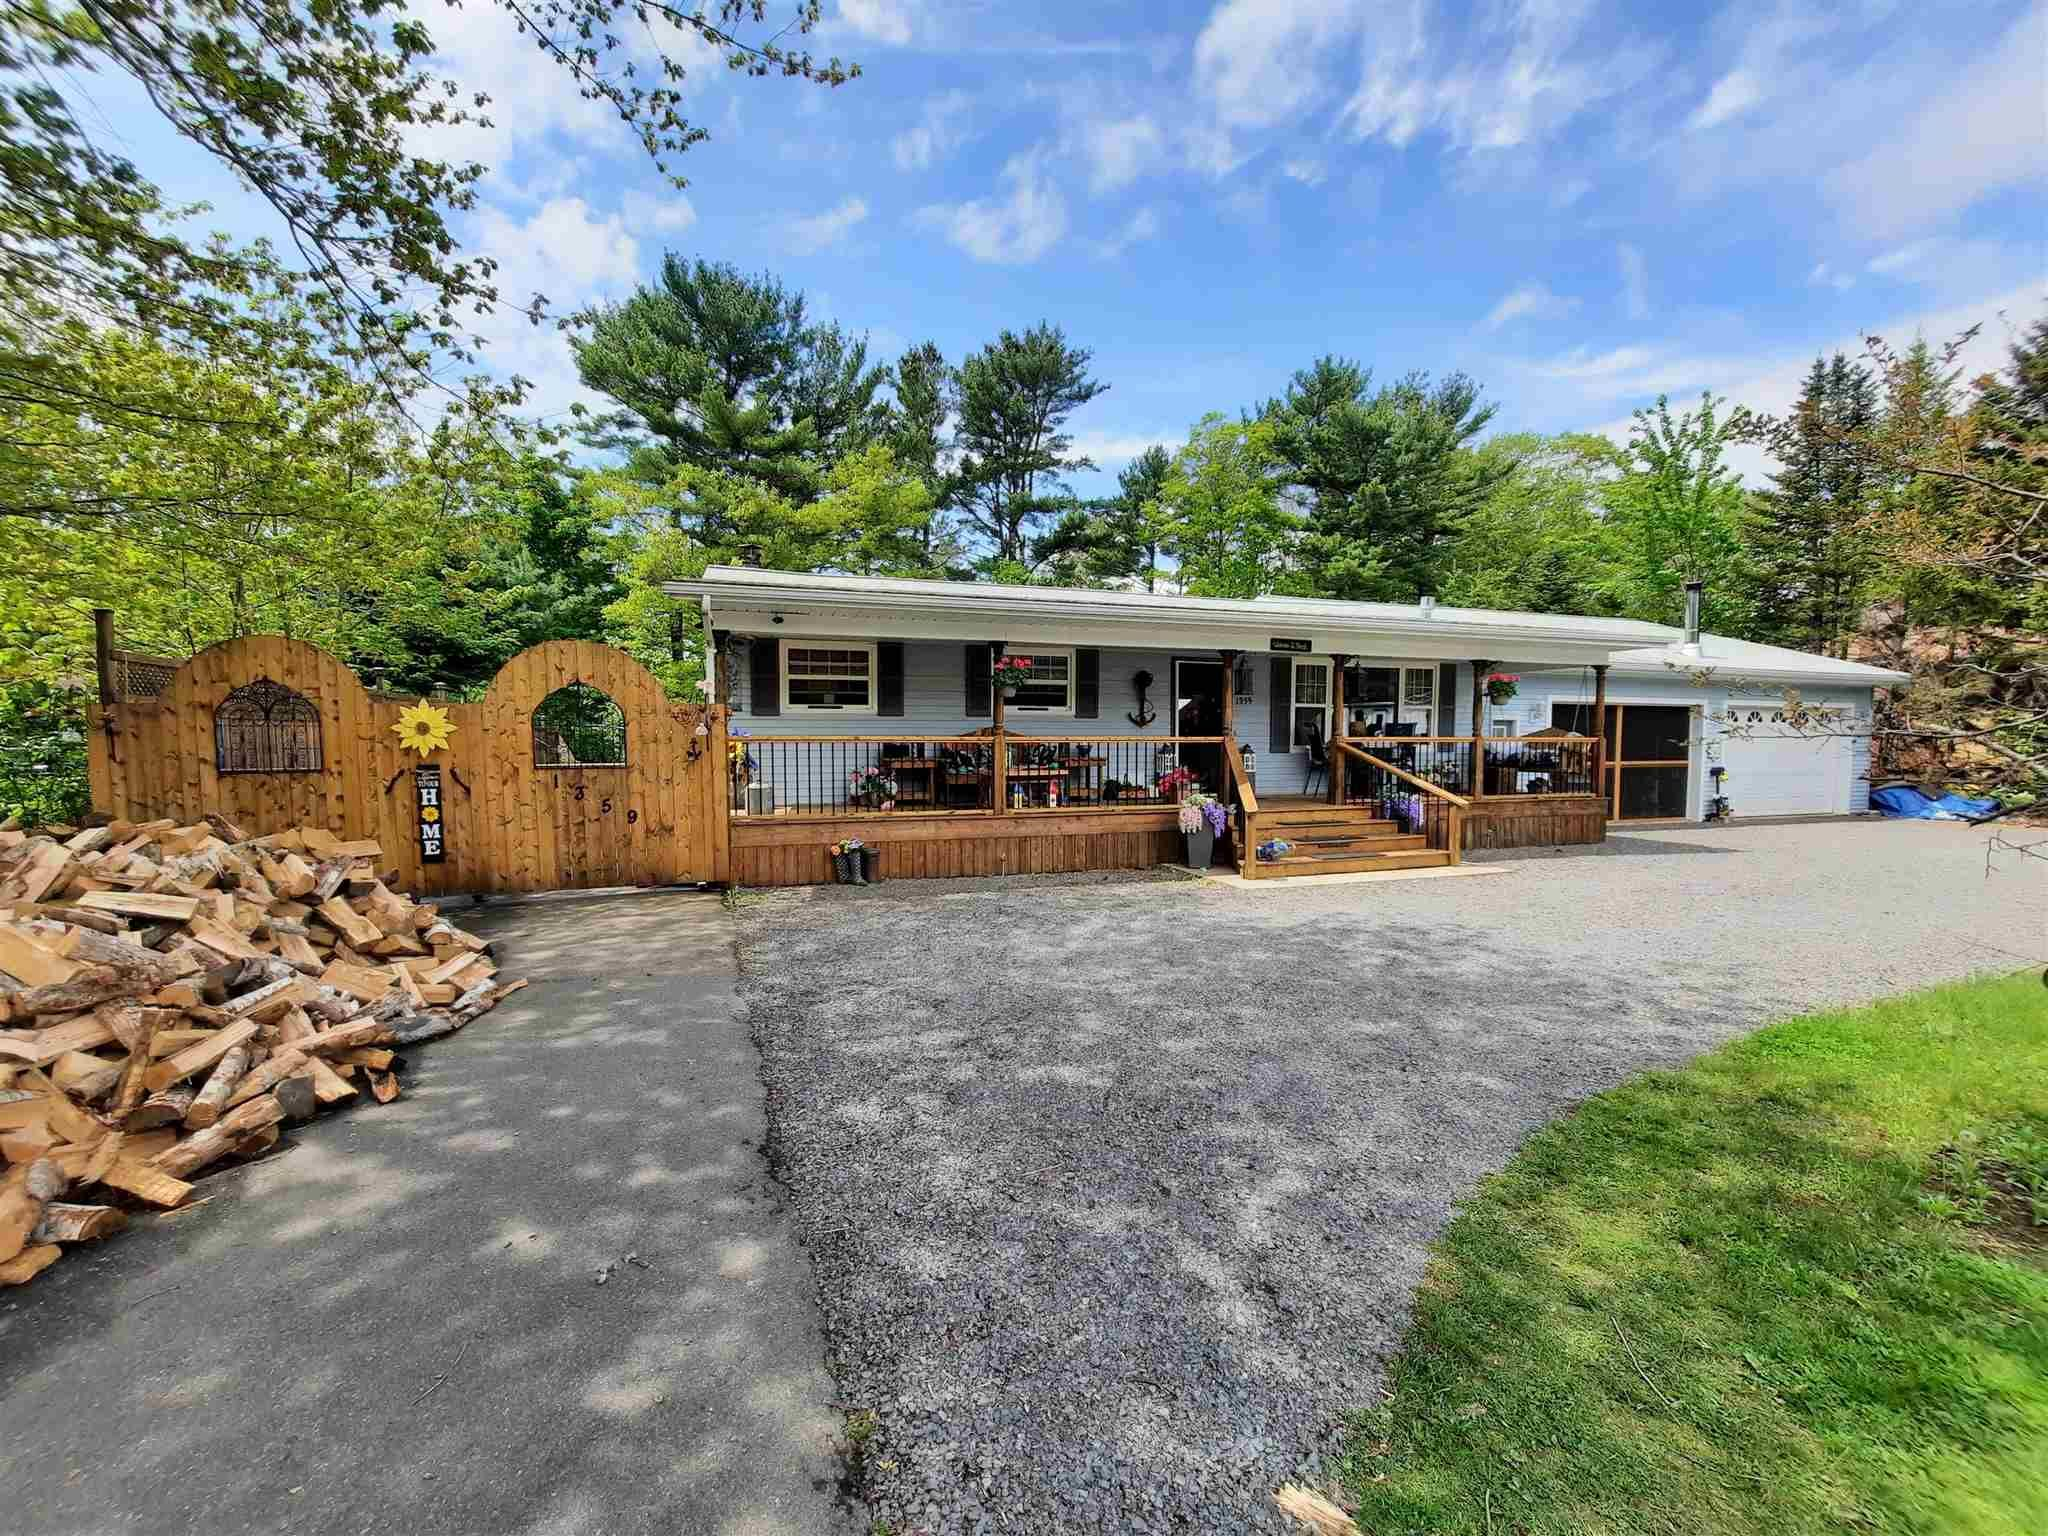 Main Photo: 1359 Pinecrest Drive in Coldbrook: 404-Kings County Residential for sale (Annapolis Valley)  : MLS®# 202114801